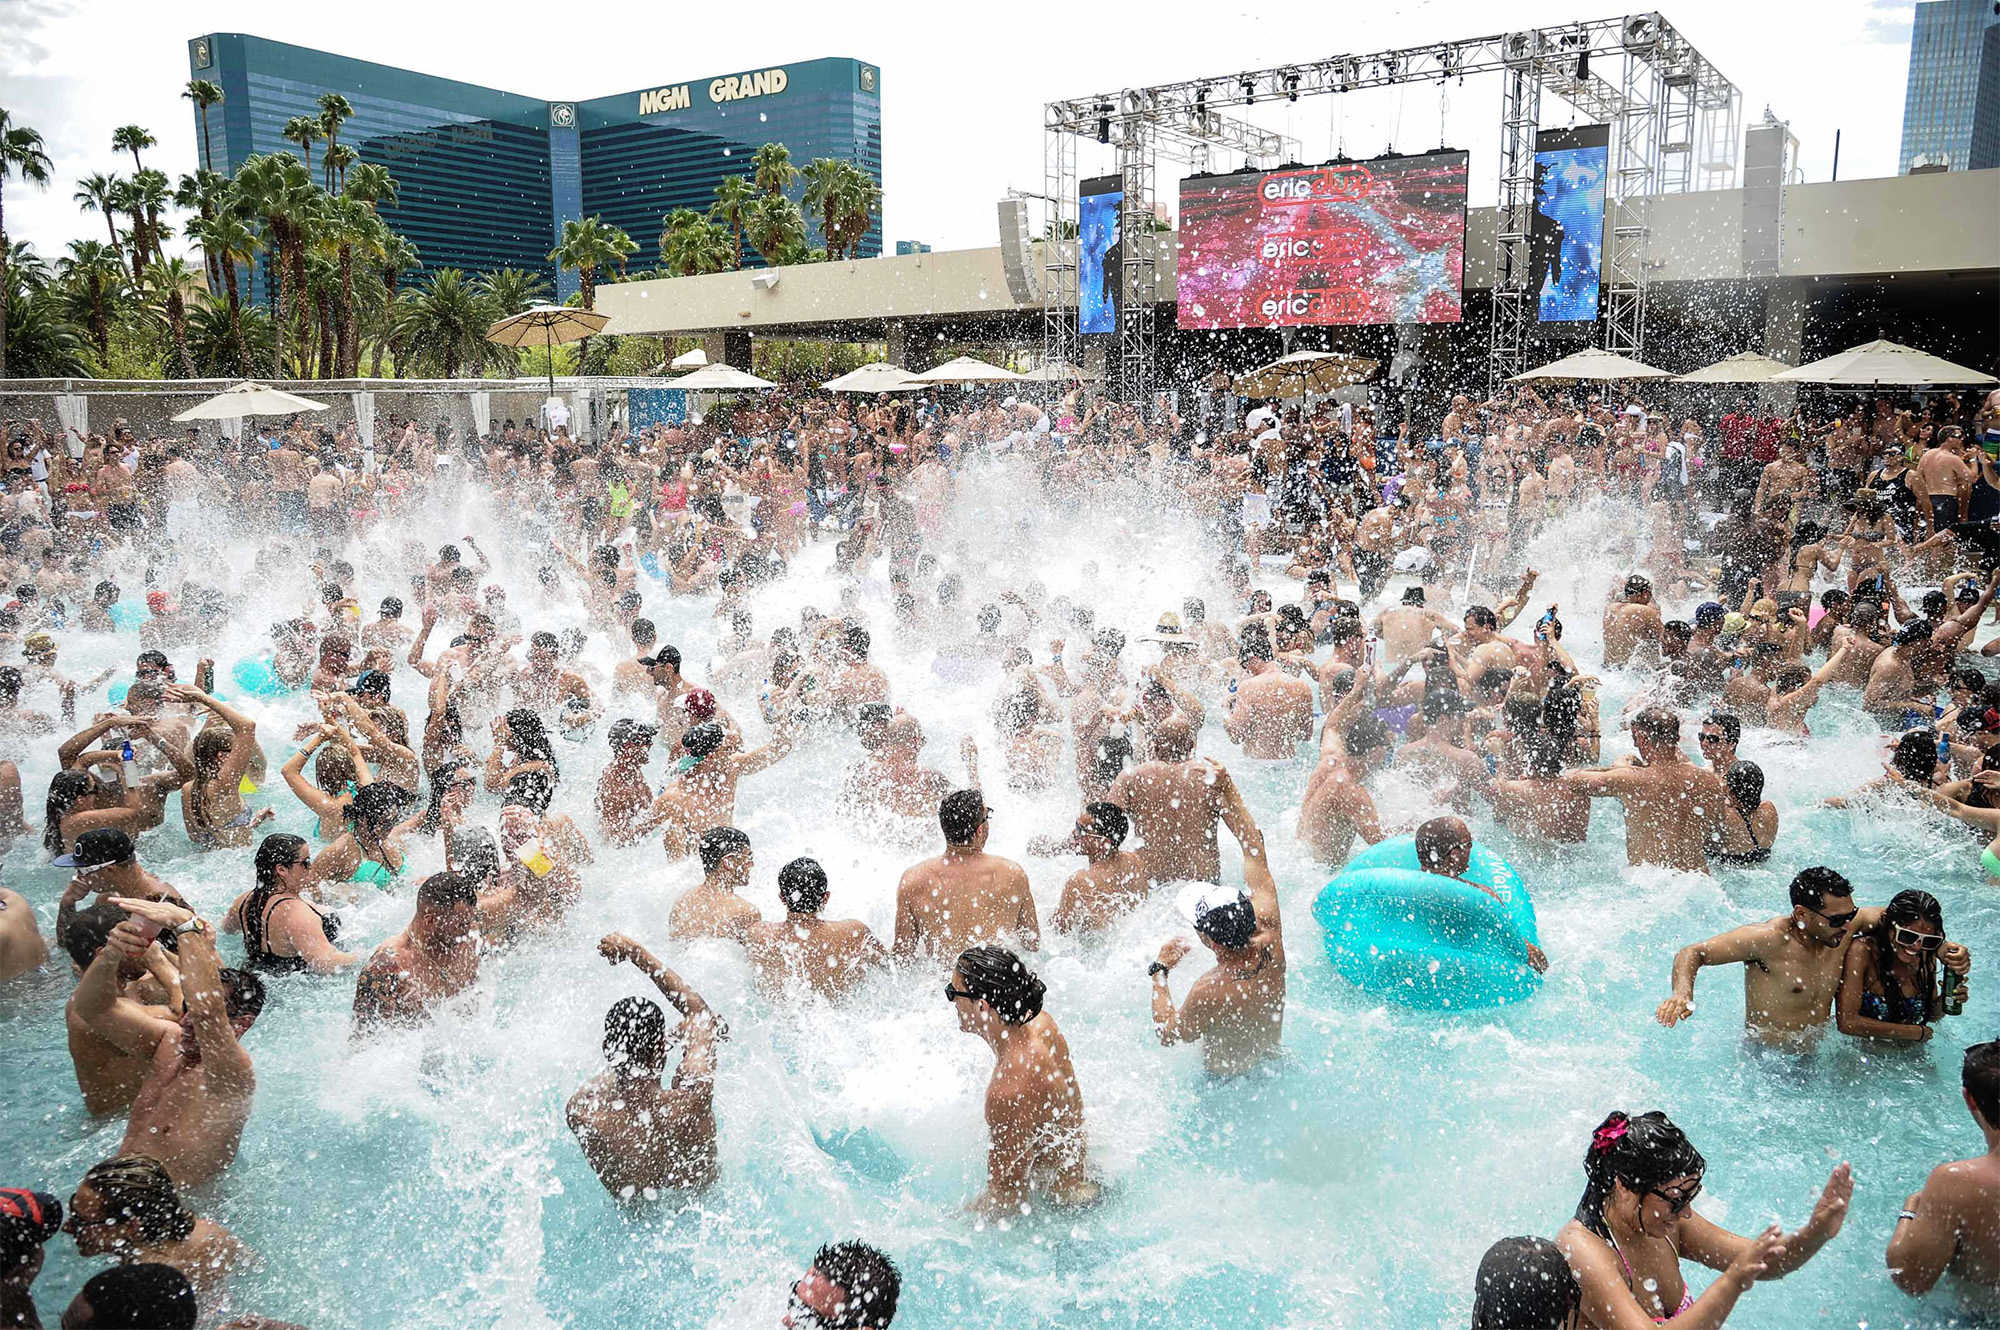 The Wet Republic Pool